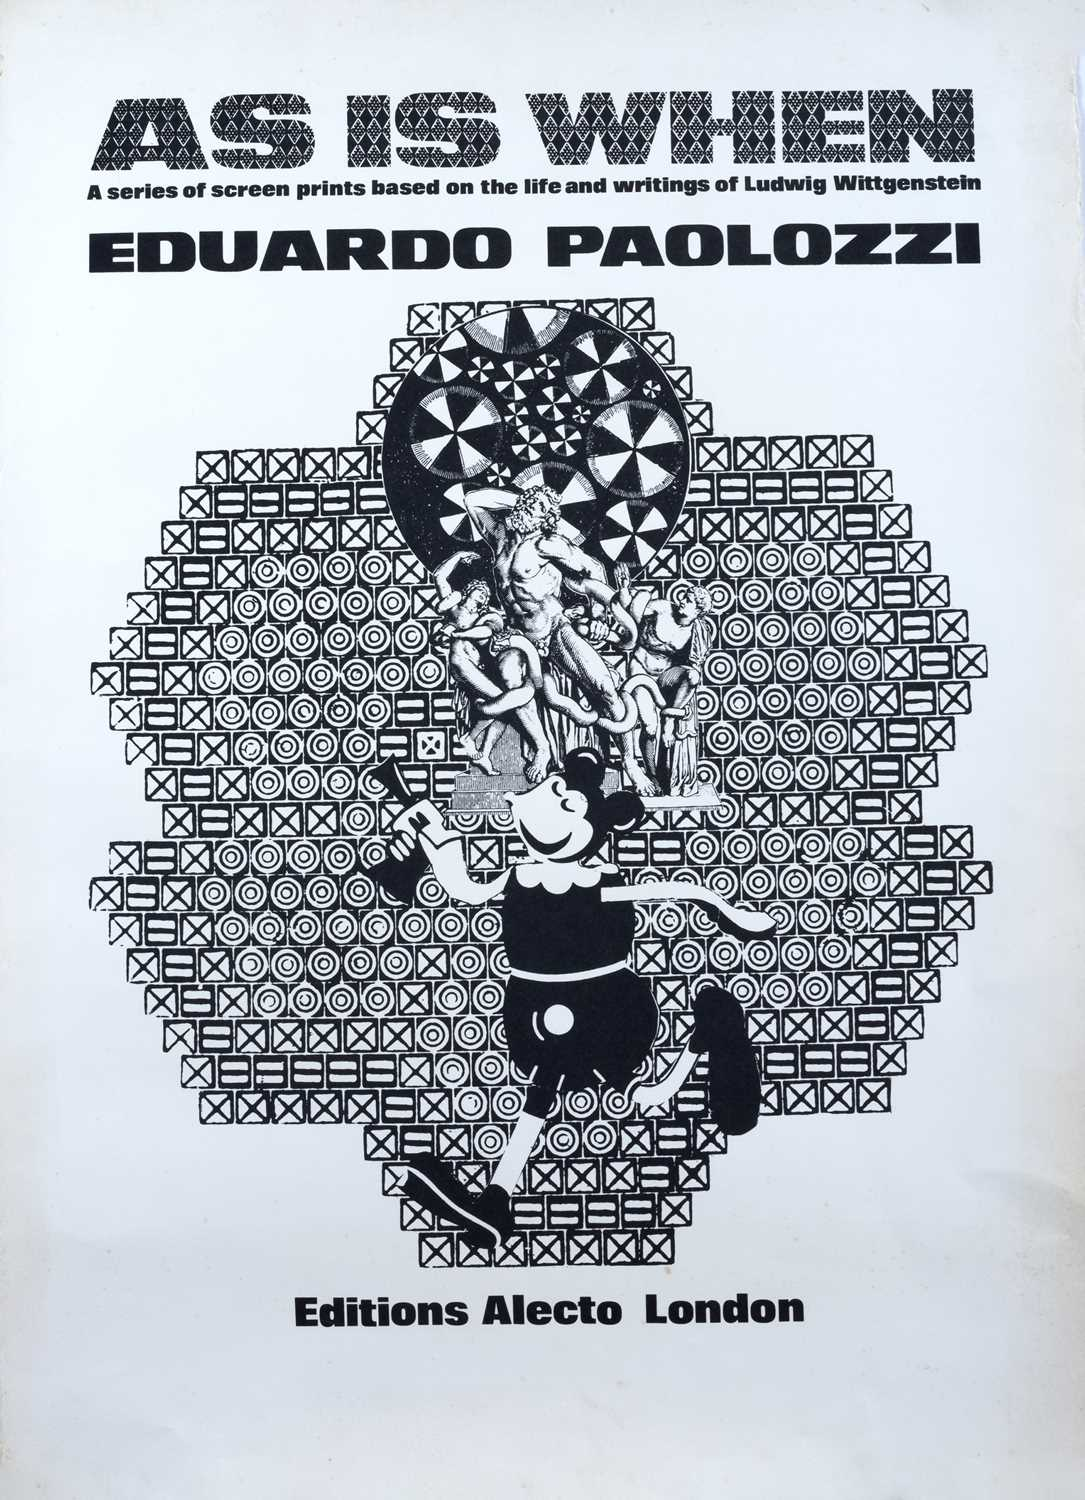 Eduardo Paolozzi exhibition poster As is When, Editions Electo London 81 x 57cm; together with a - Image 2 of 2